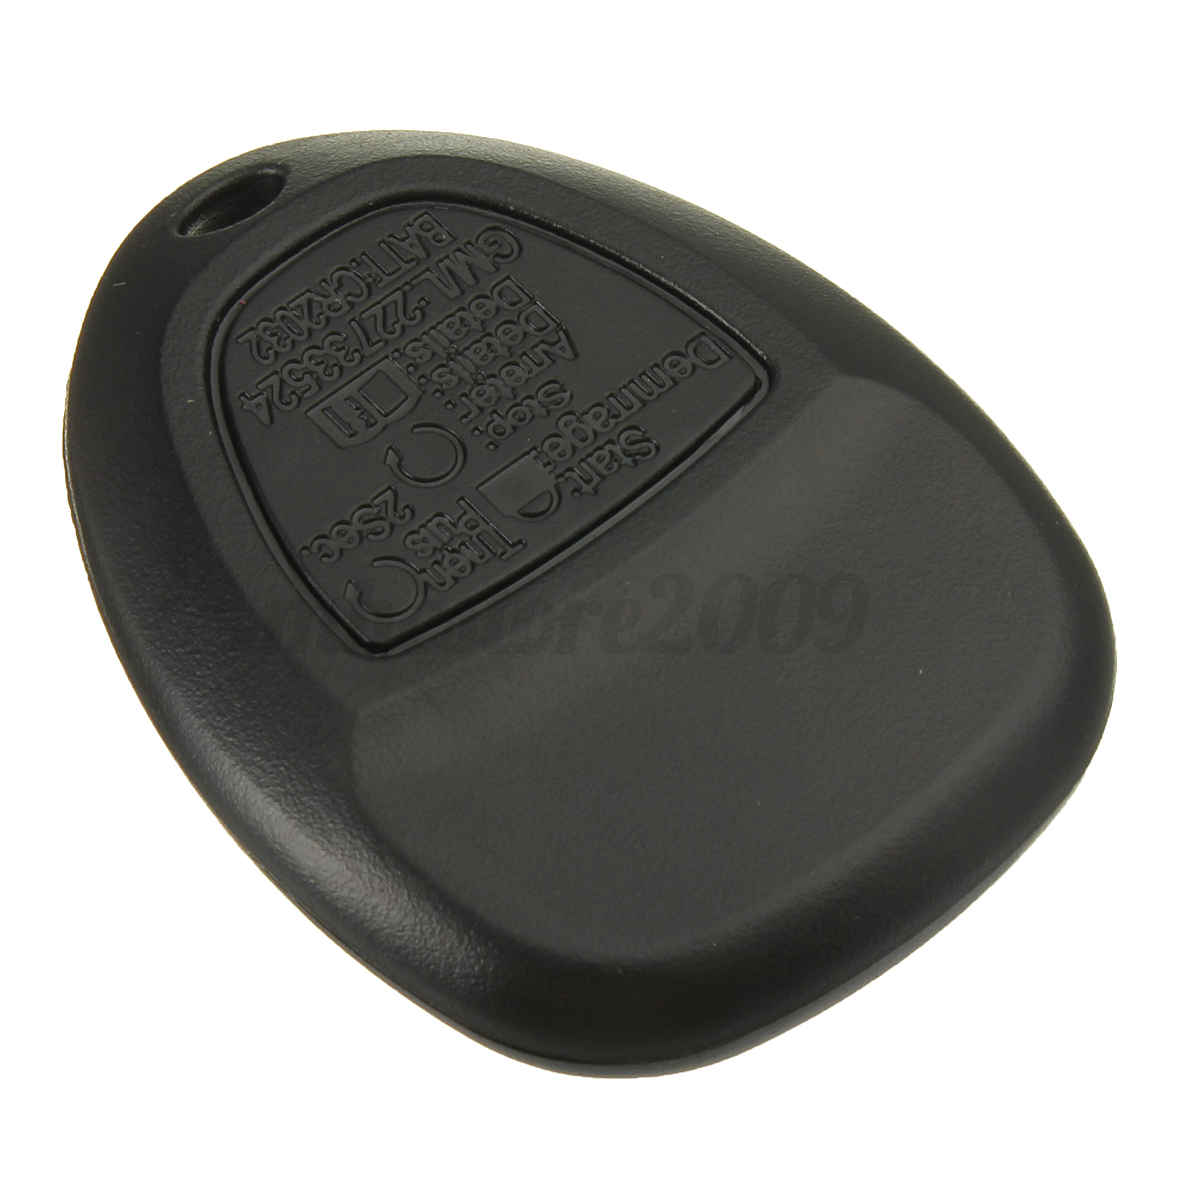 5 Buttons Remote Key Case Shell Fob W Rubber Pad For Gm Buick Chevrolet Pontiac Ebay